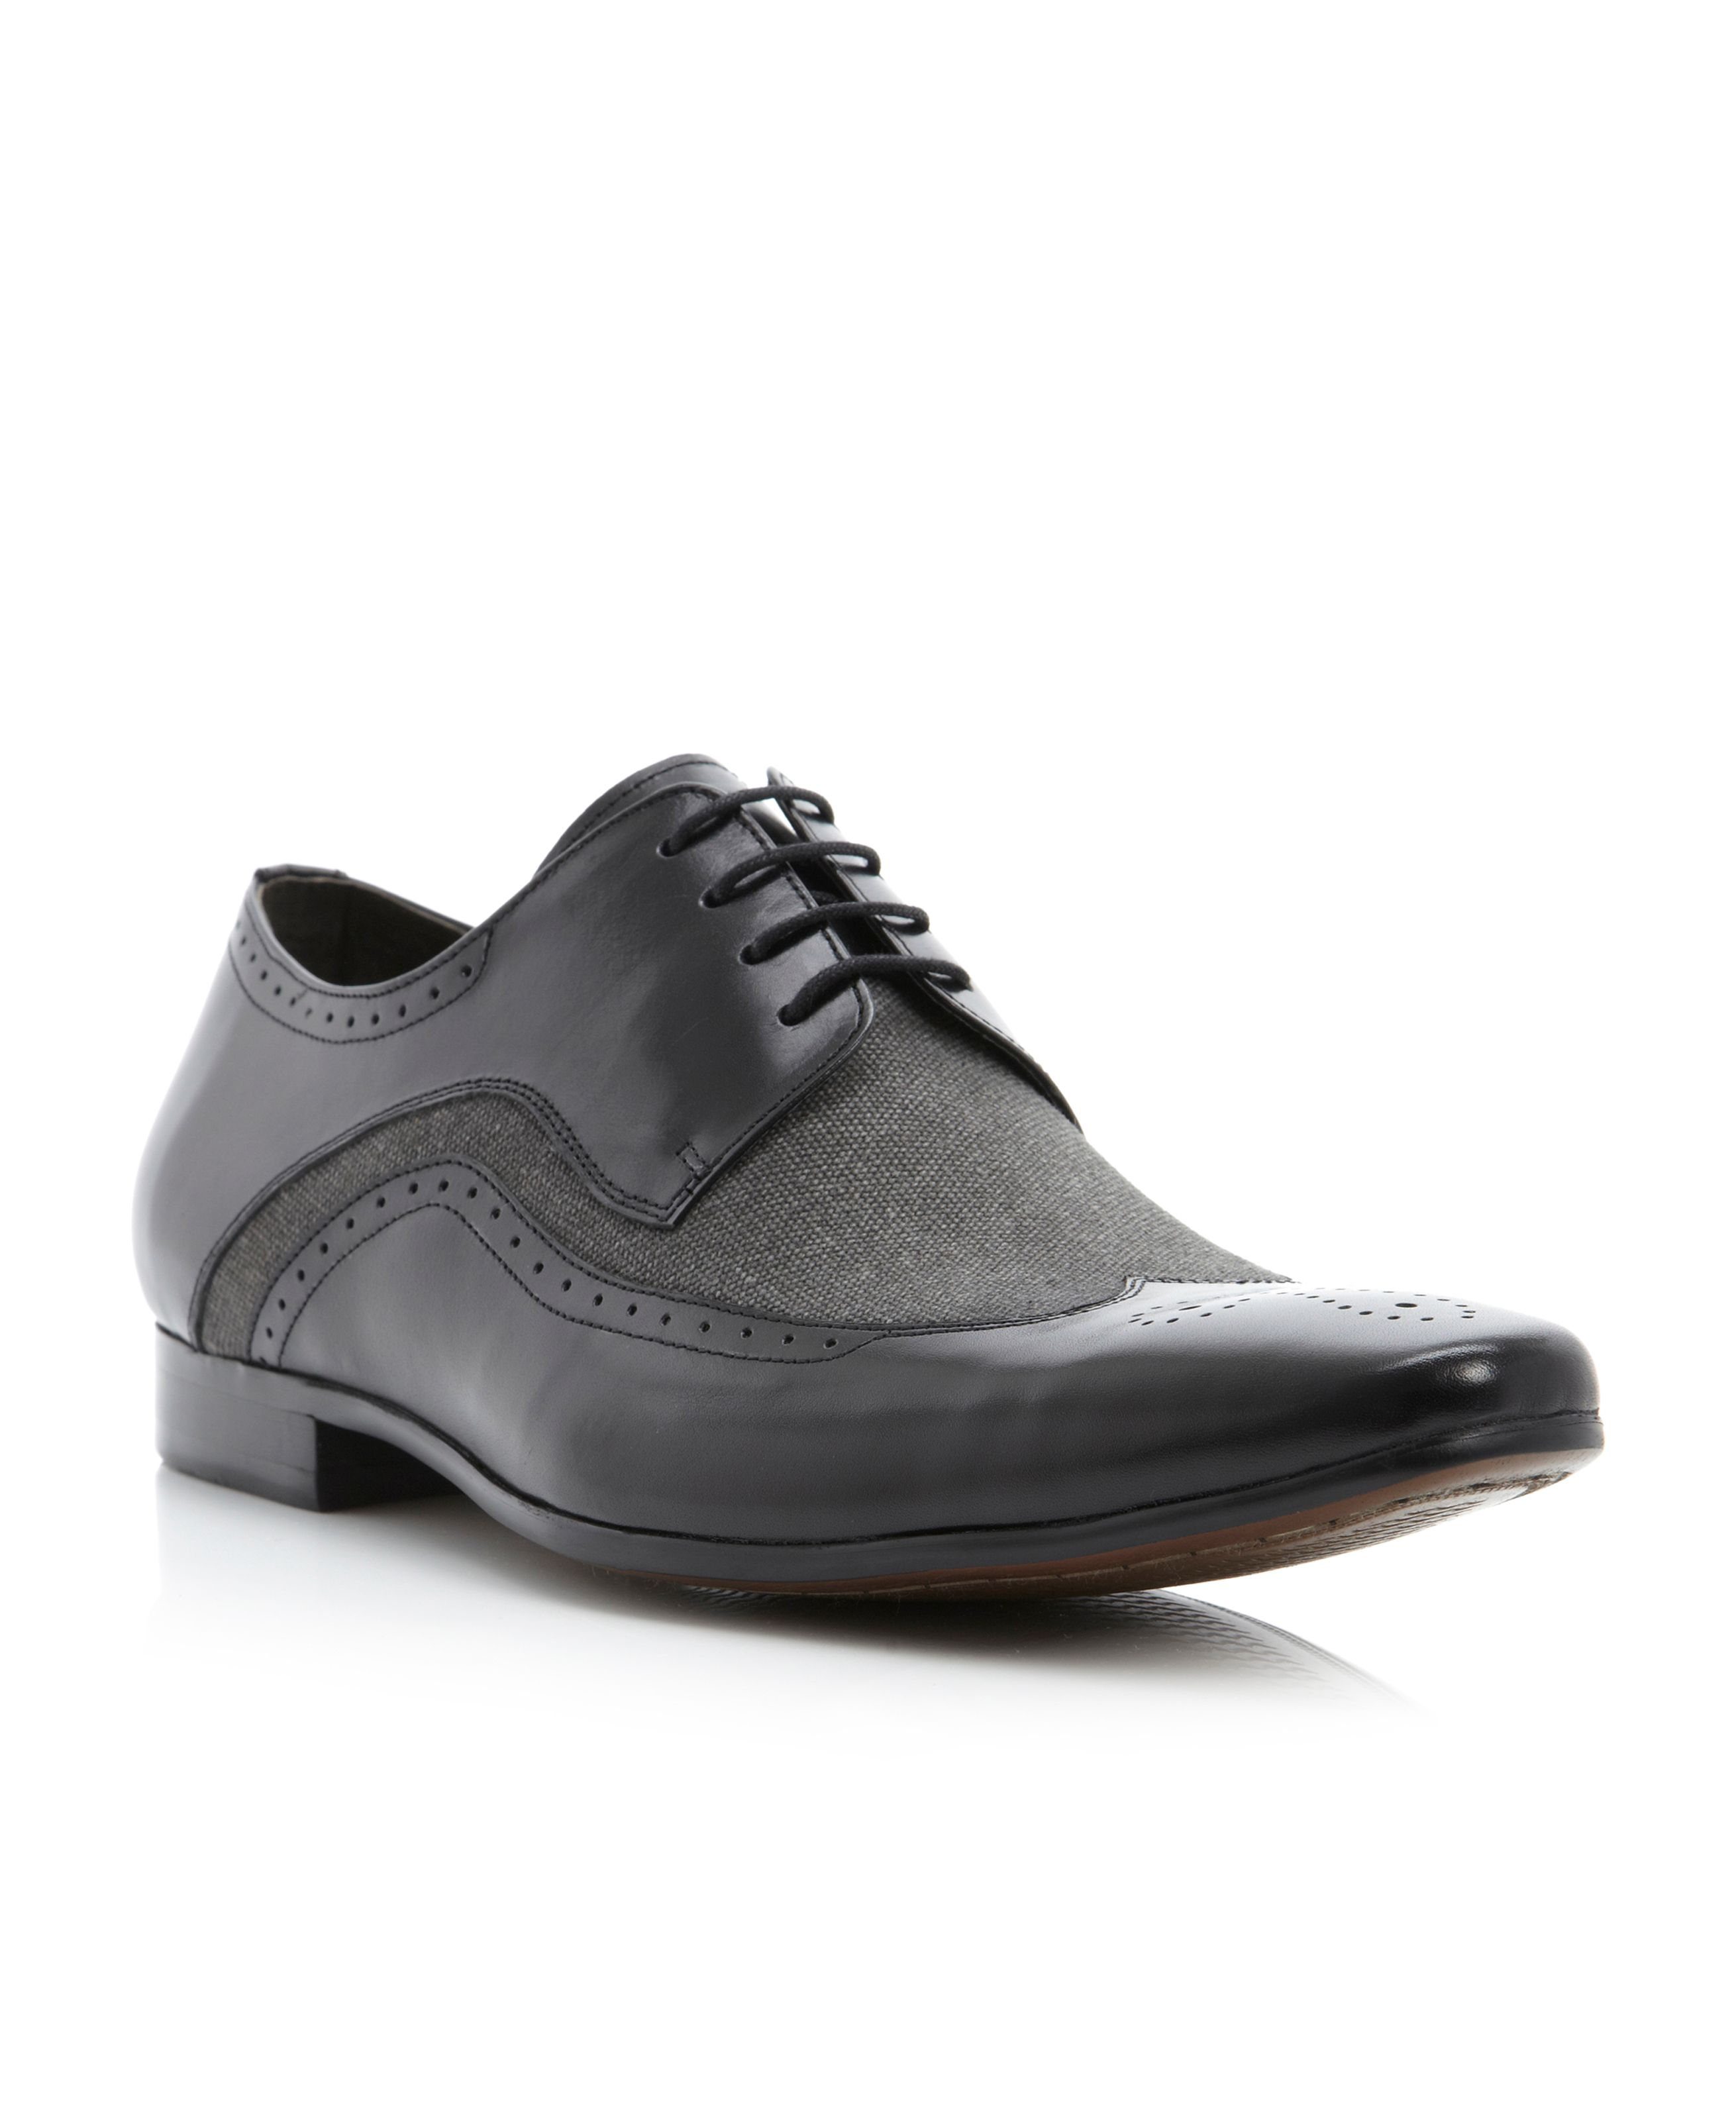 Accredit canvas dtl wingtip lace